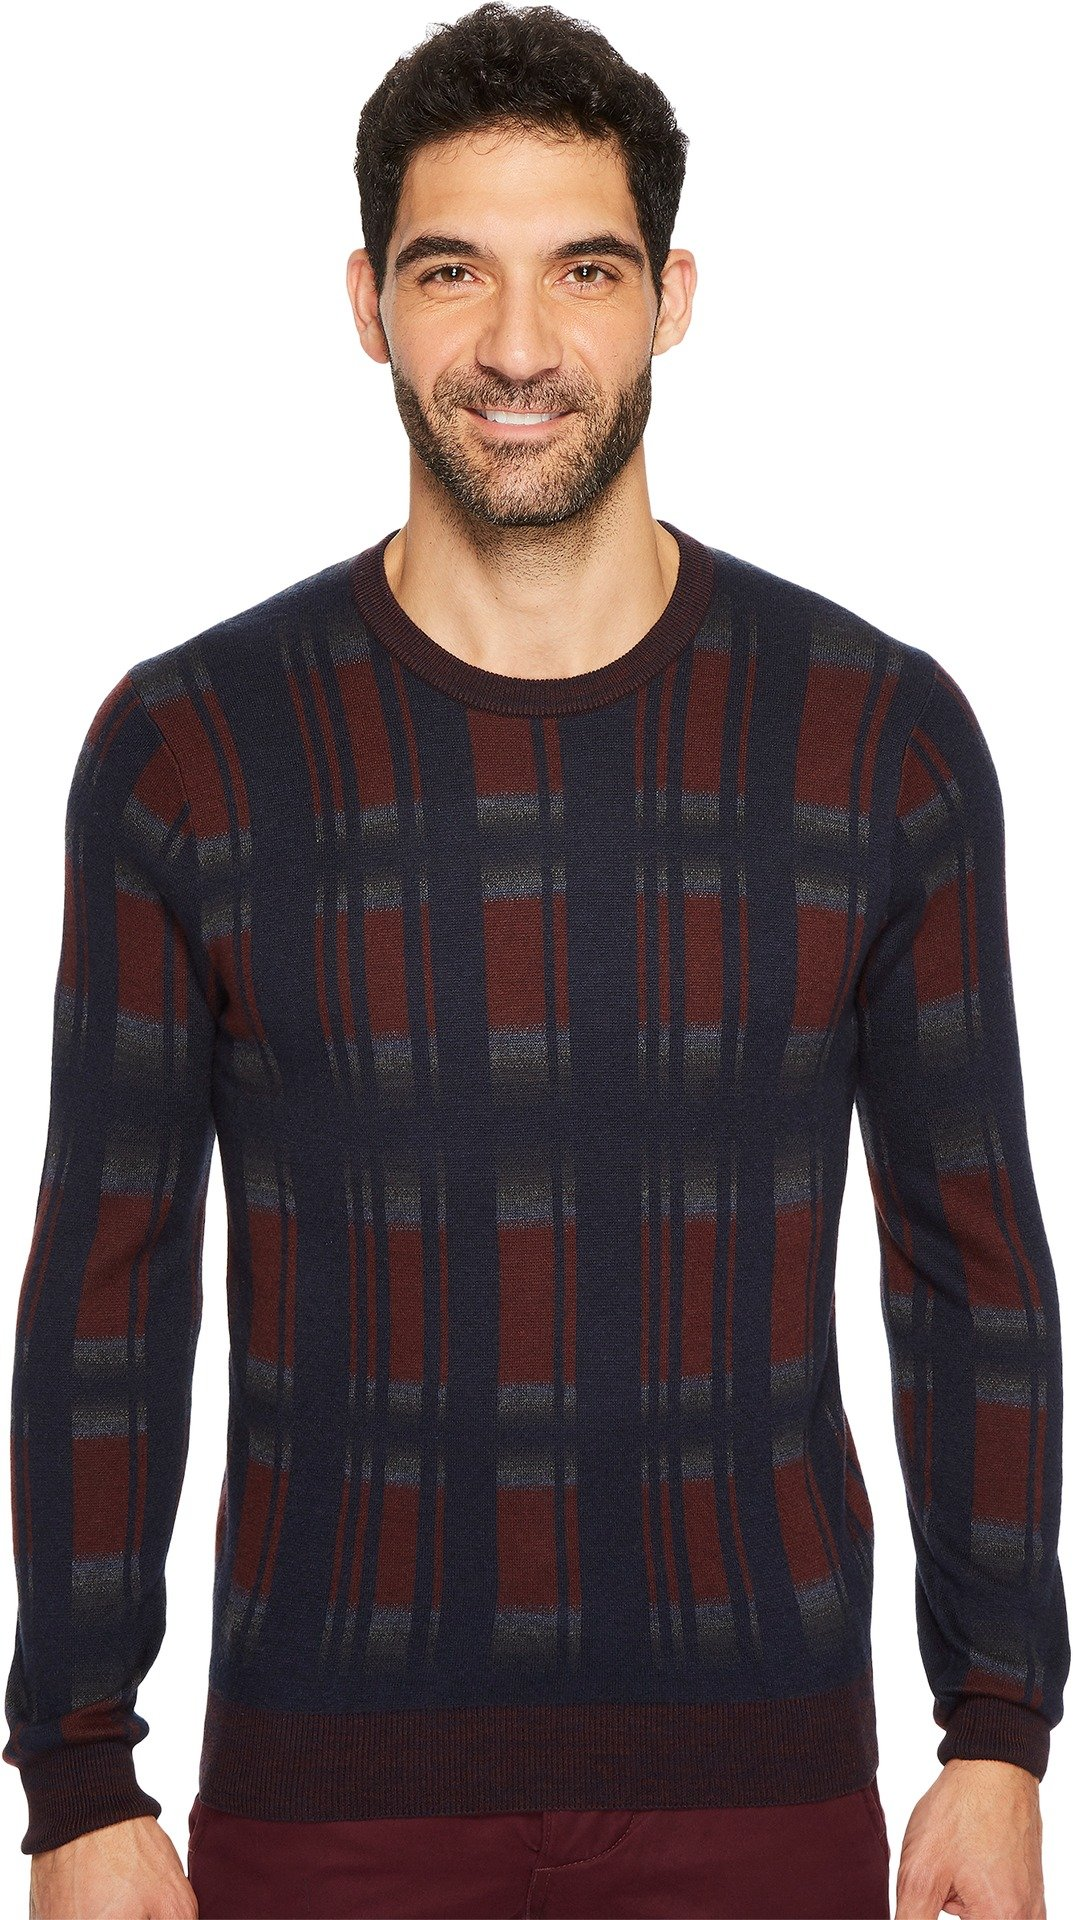 Perry Ellis Men's Winter Cotton Plaid Crew Sweater, Royal Black Cherry, Small